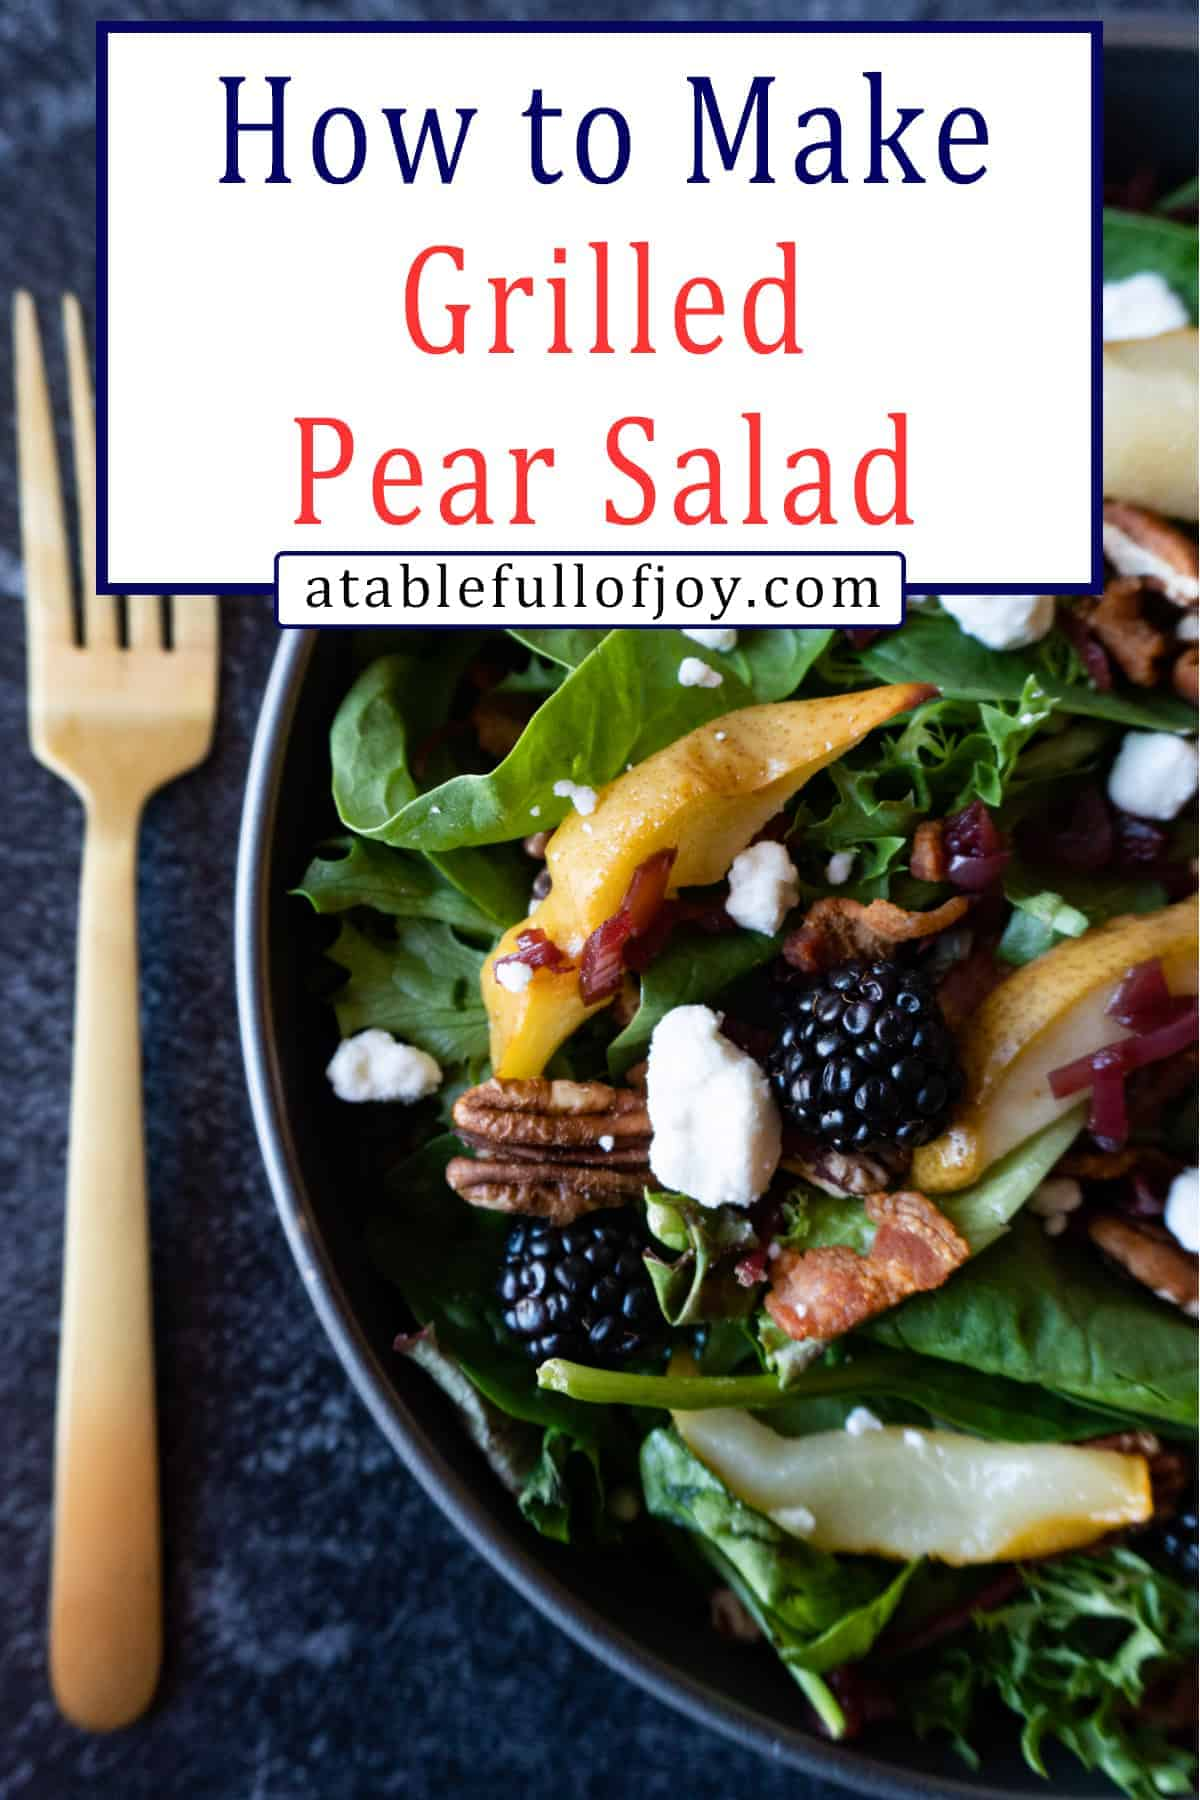 Pinterest pin for Grilled Pear Salad